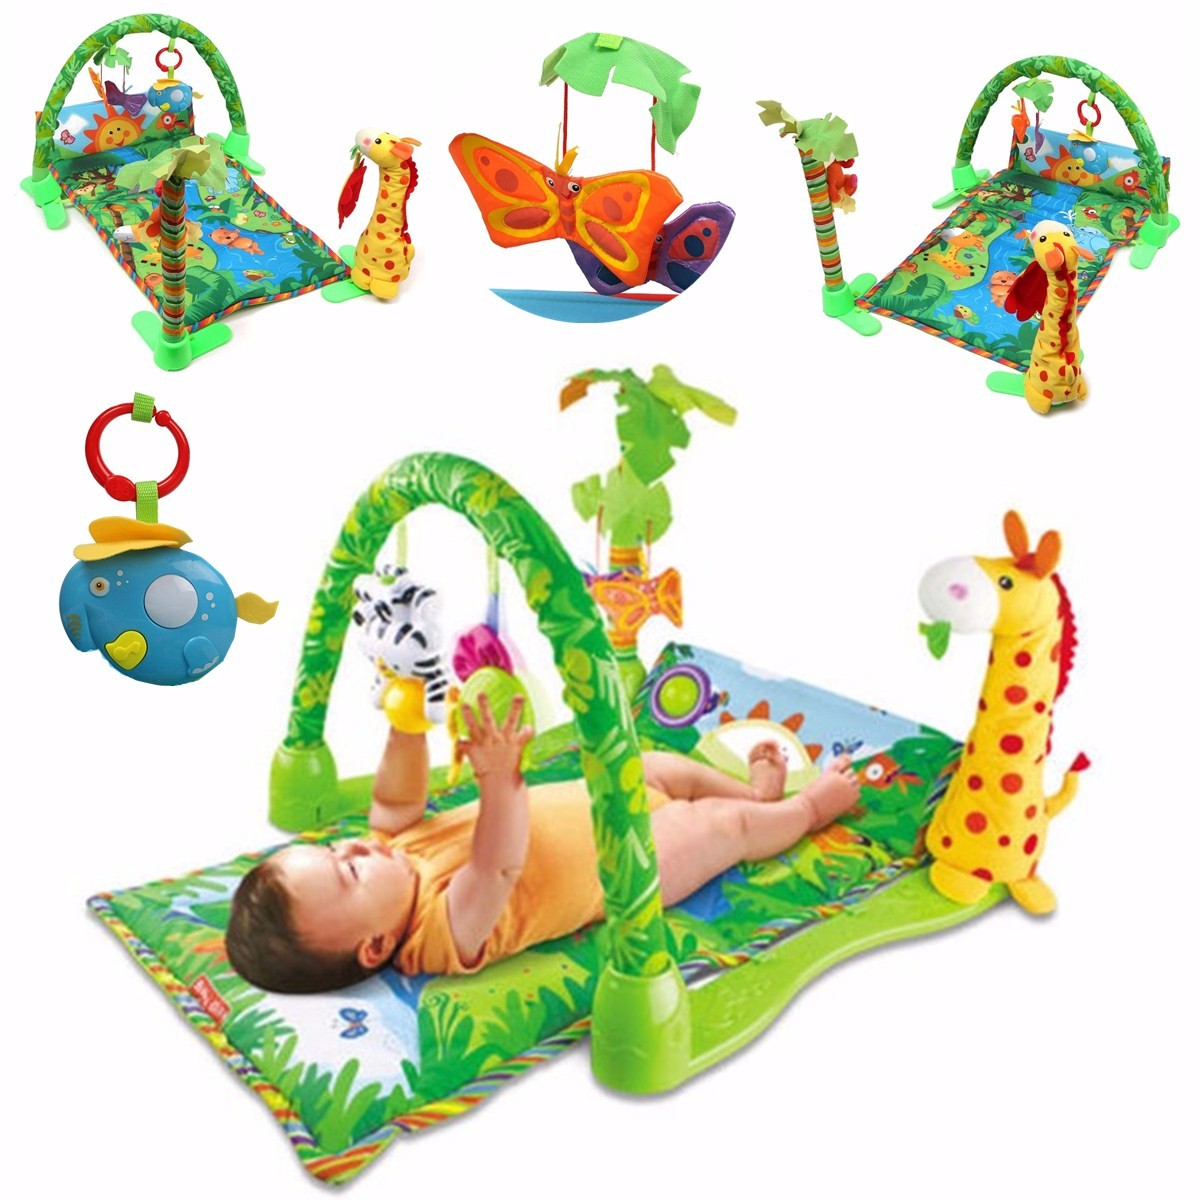 Baby Gift 3 in 1 Rainforest Musical Gym Lullaby Baby Activity Mat Play Gym Toys